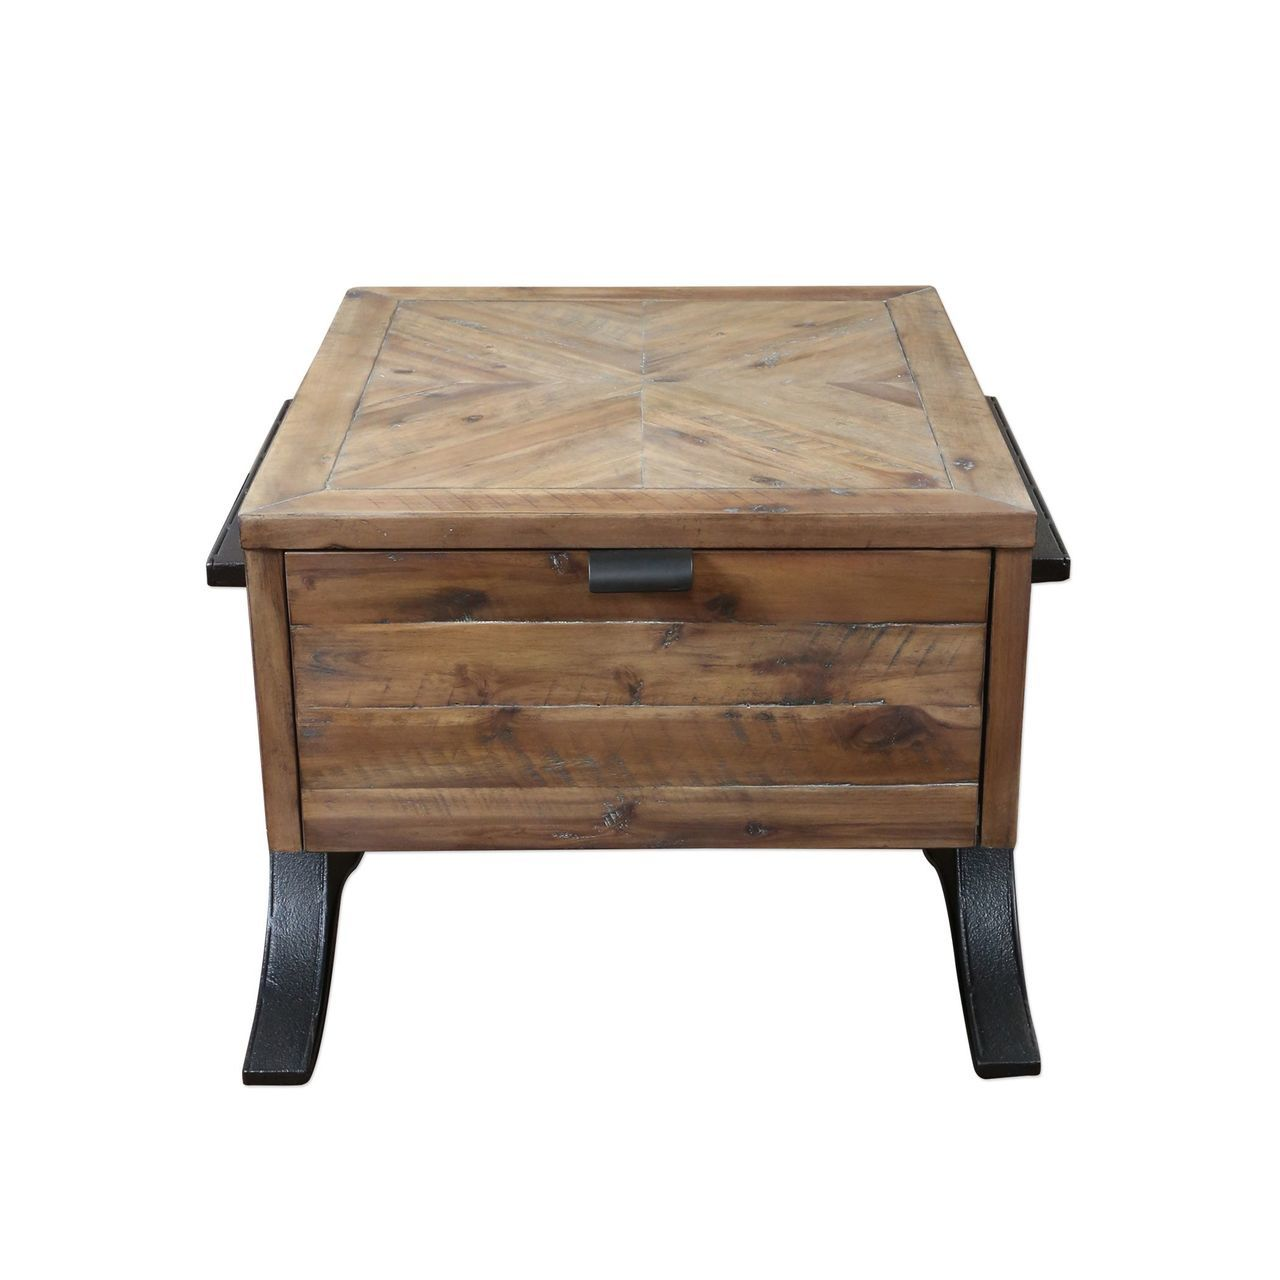 rustic industrial wood iron accent table square drawer cottage teal sofa grill brush dining room doors kitchenette and chairs outdoor antique oval coffee bunnings swing seat mid